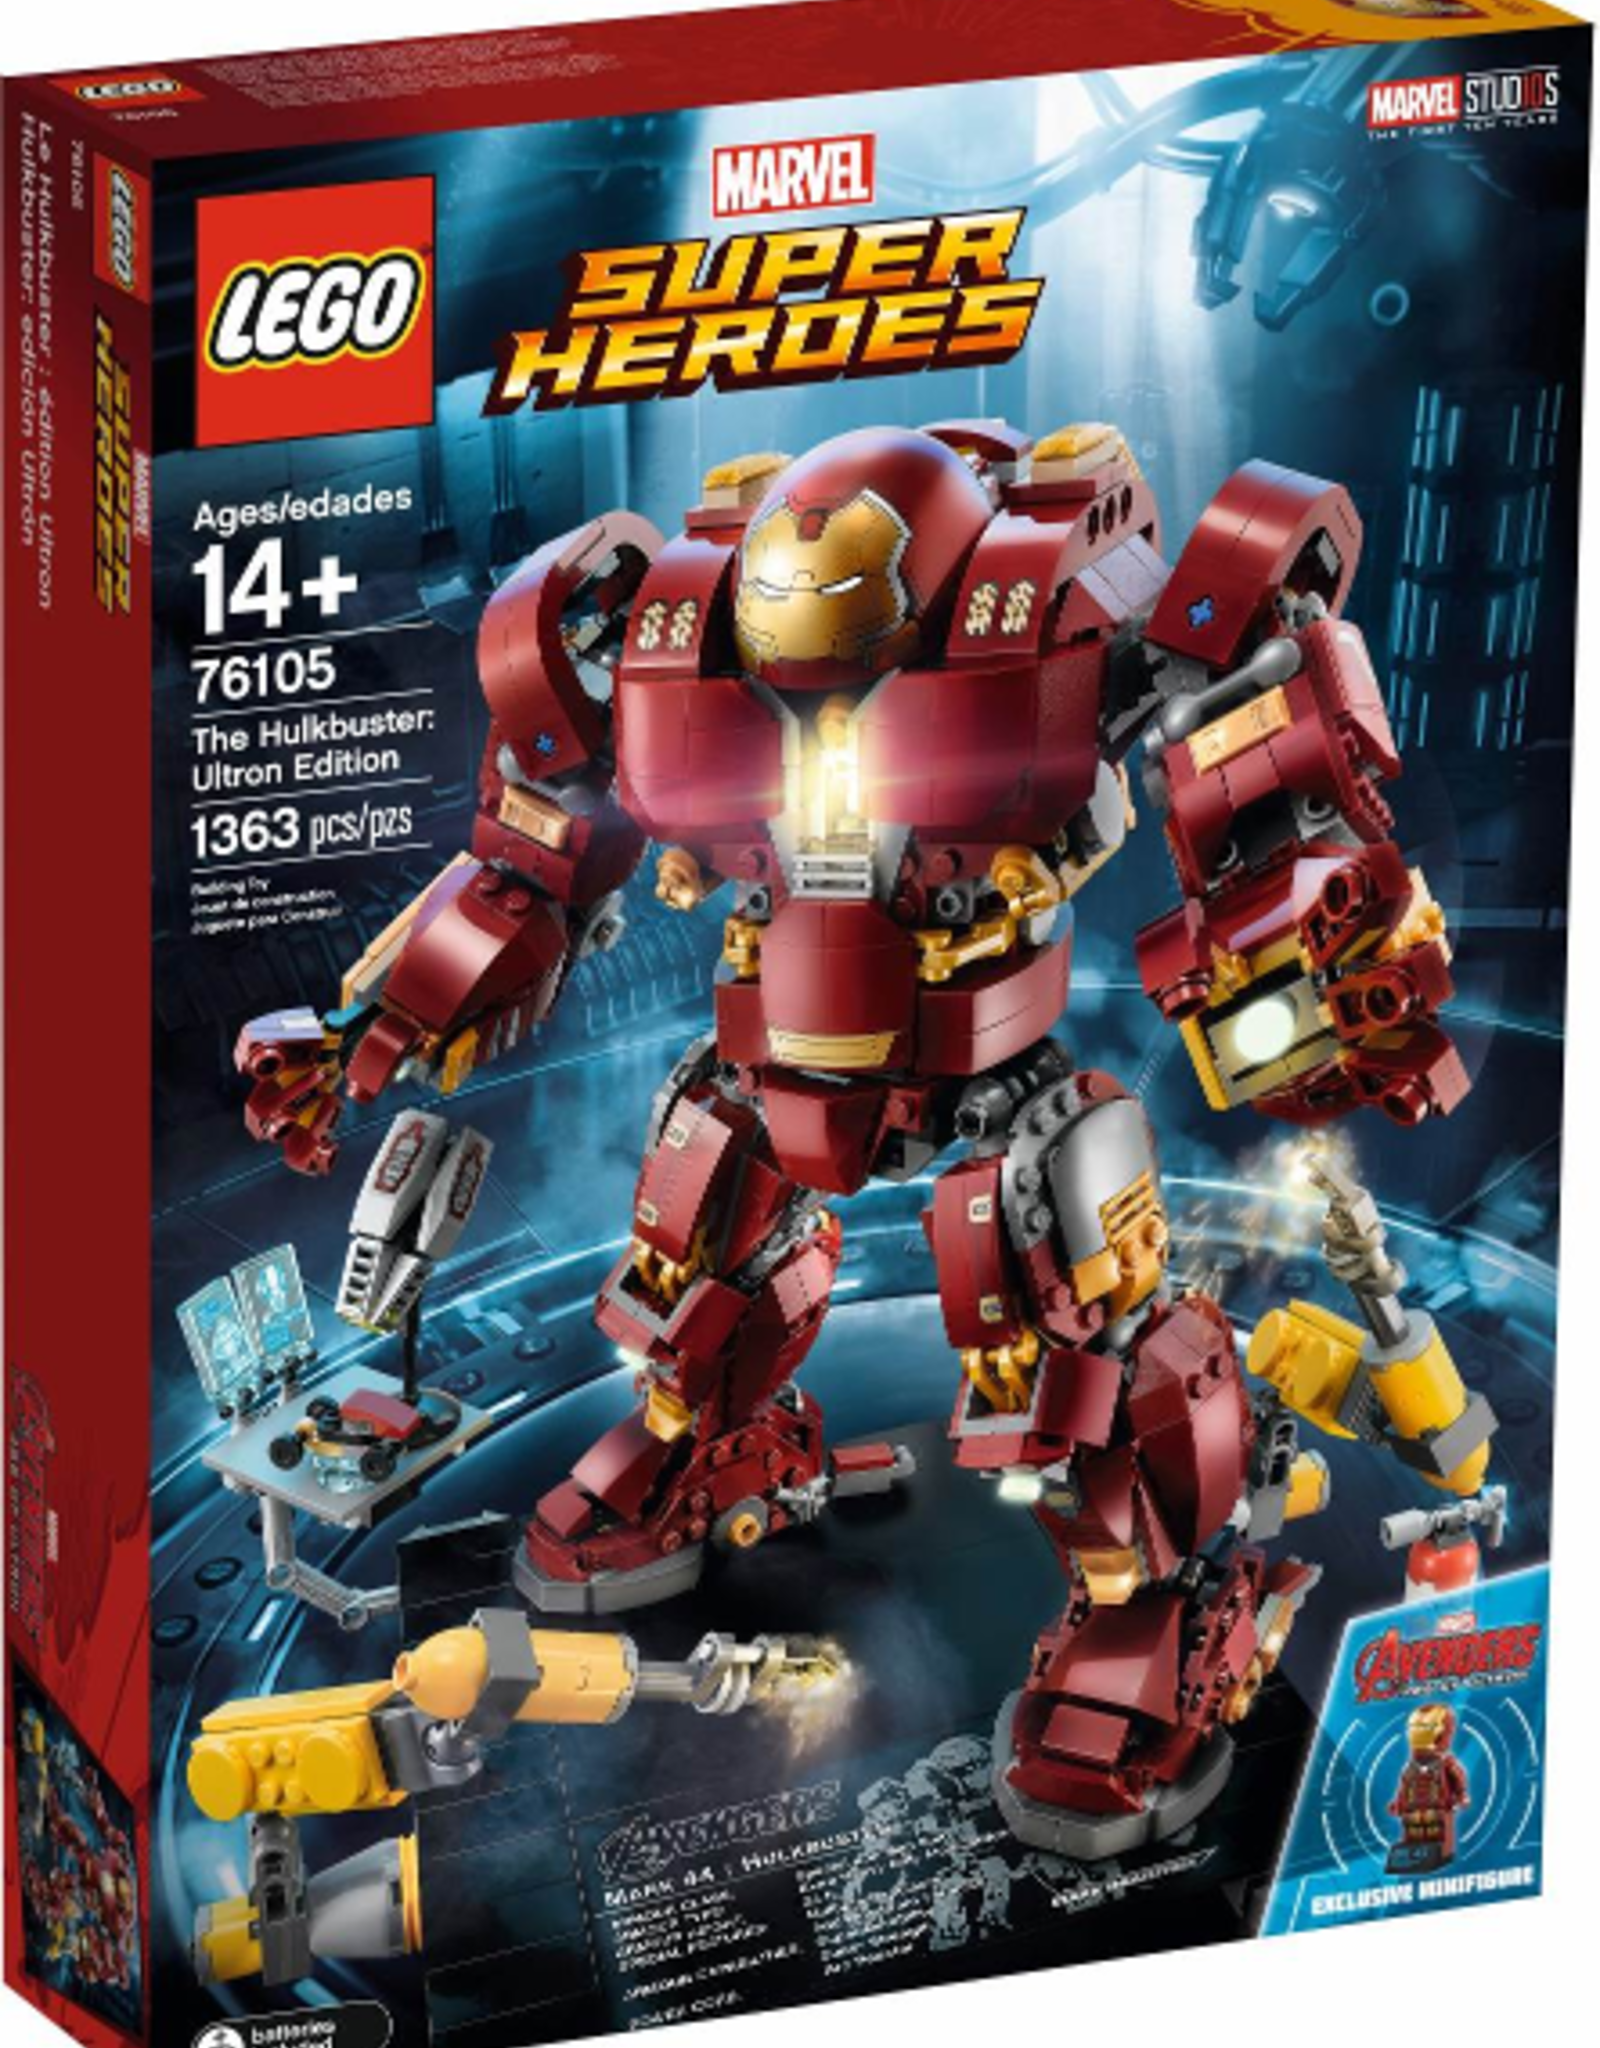 LEGO LEGO 76105 The Hulkbuster: Ultron Edition SUPER HEROES